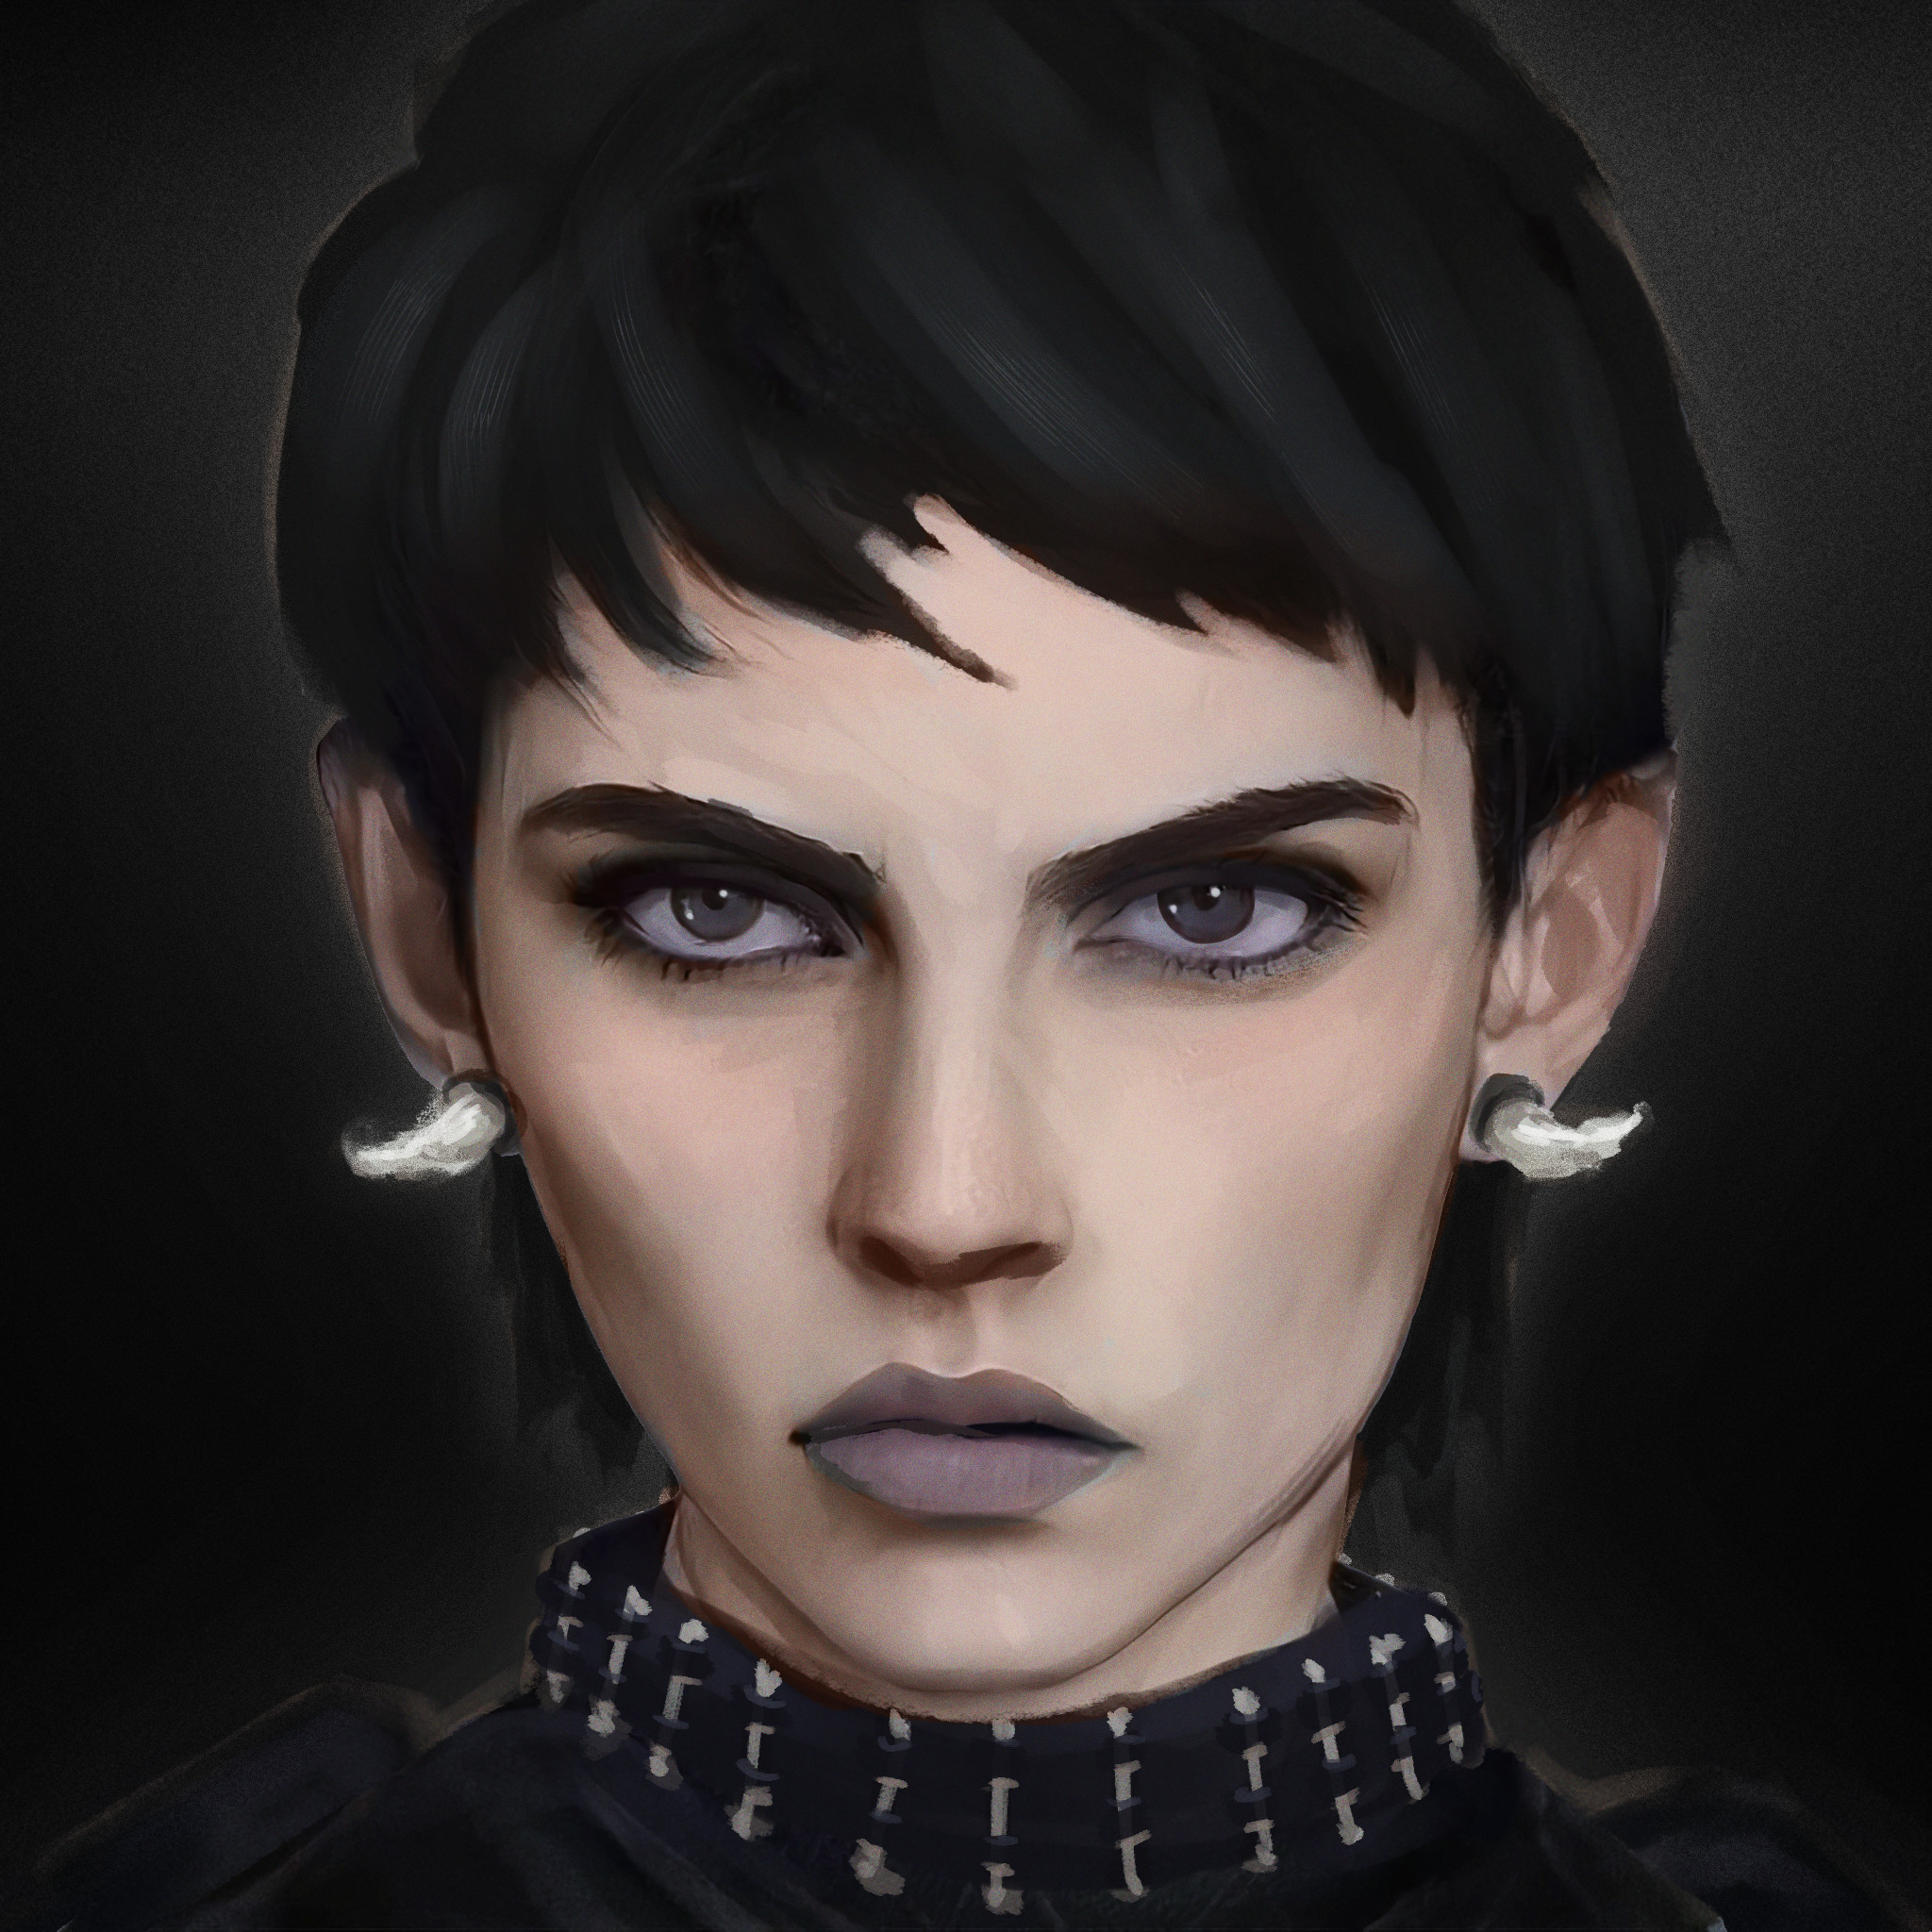 Harrow without face paint.